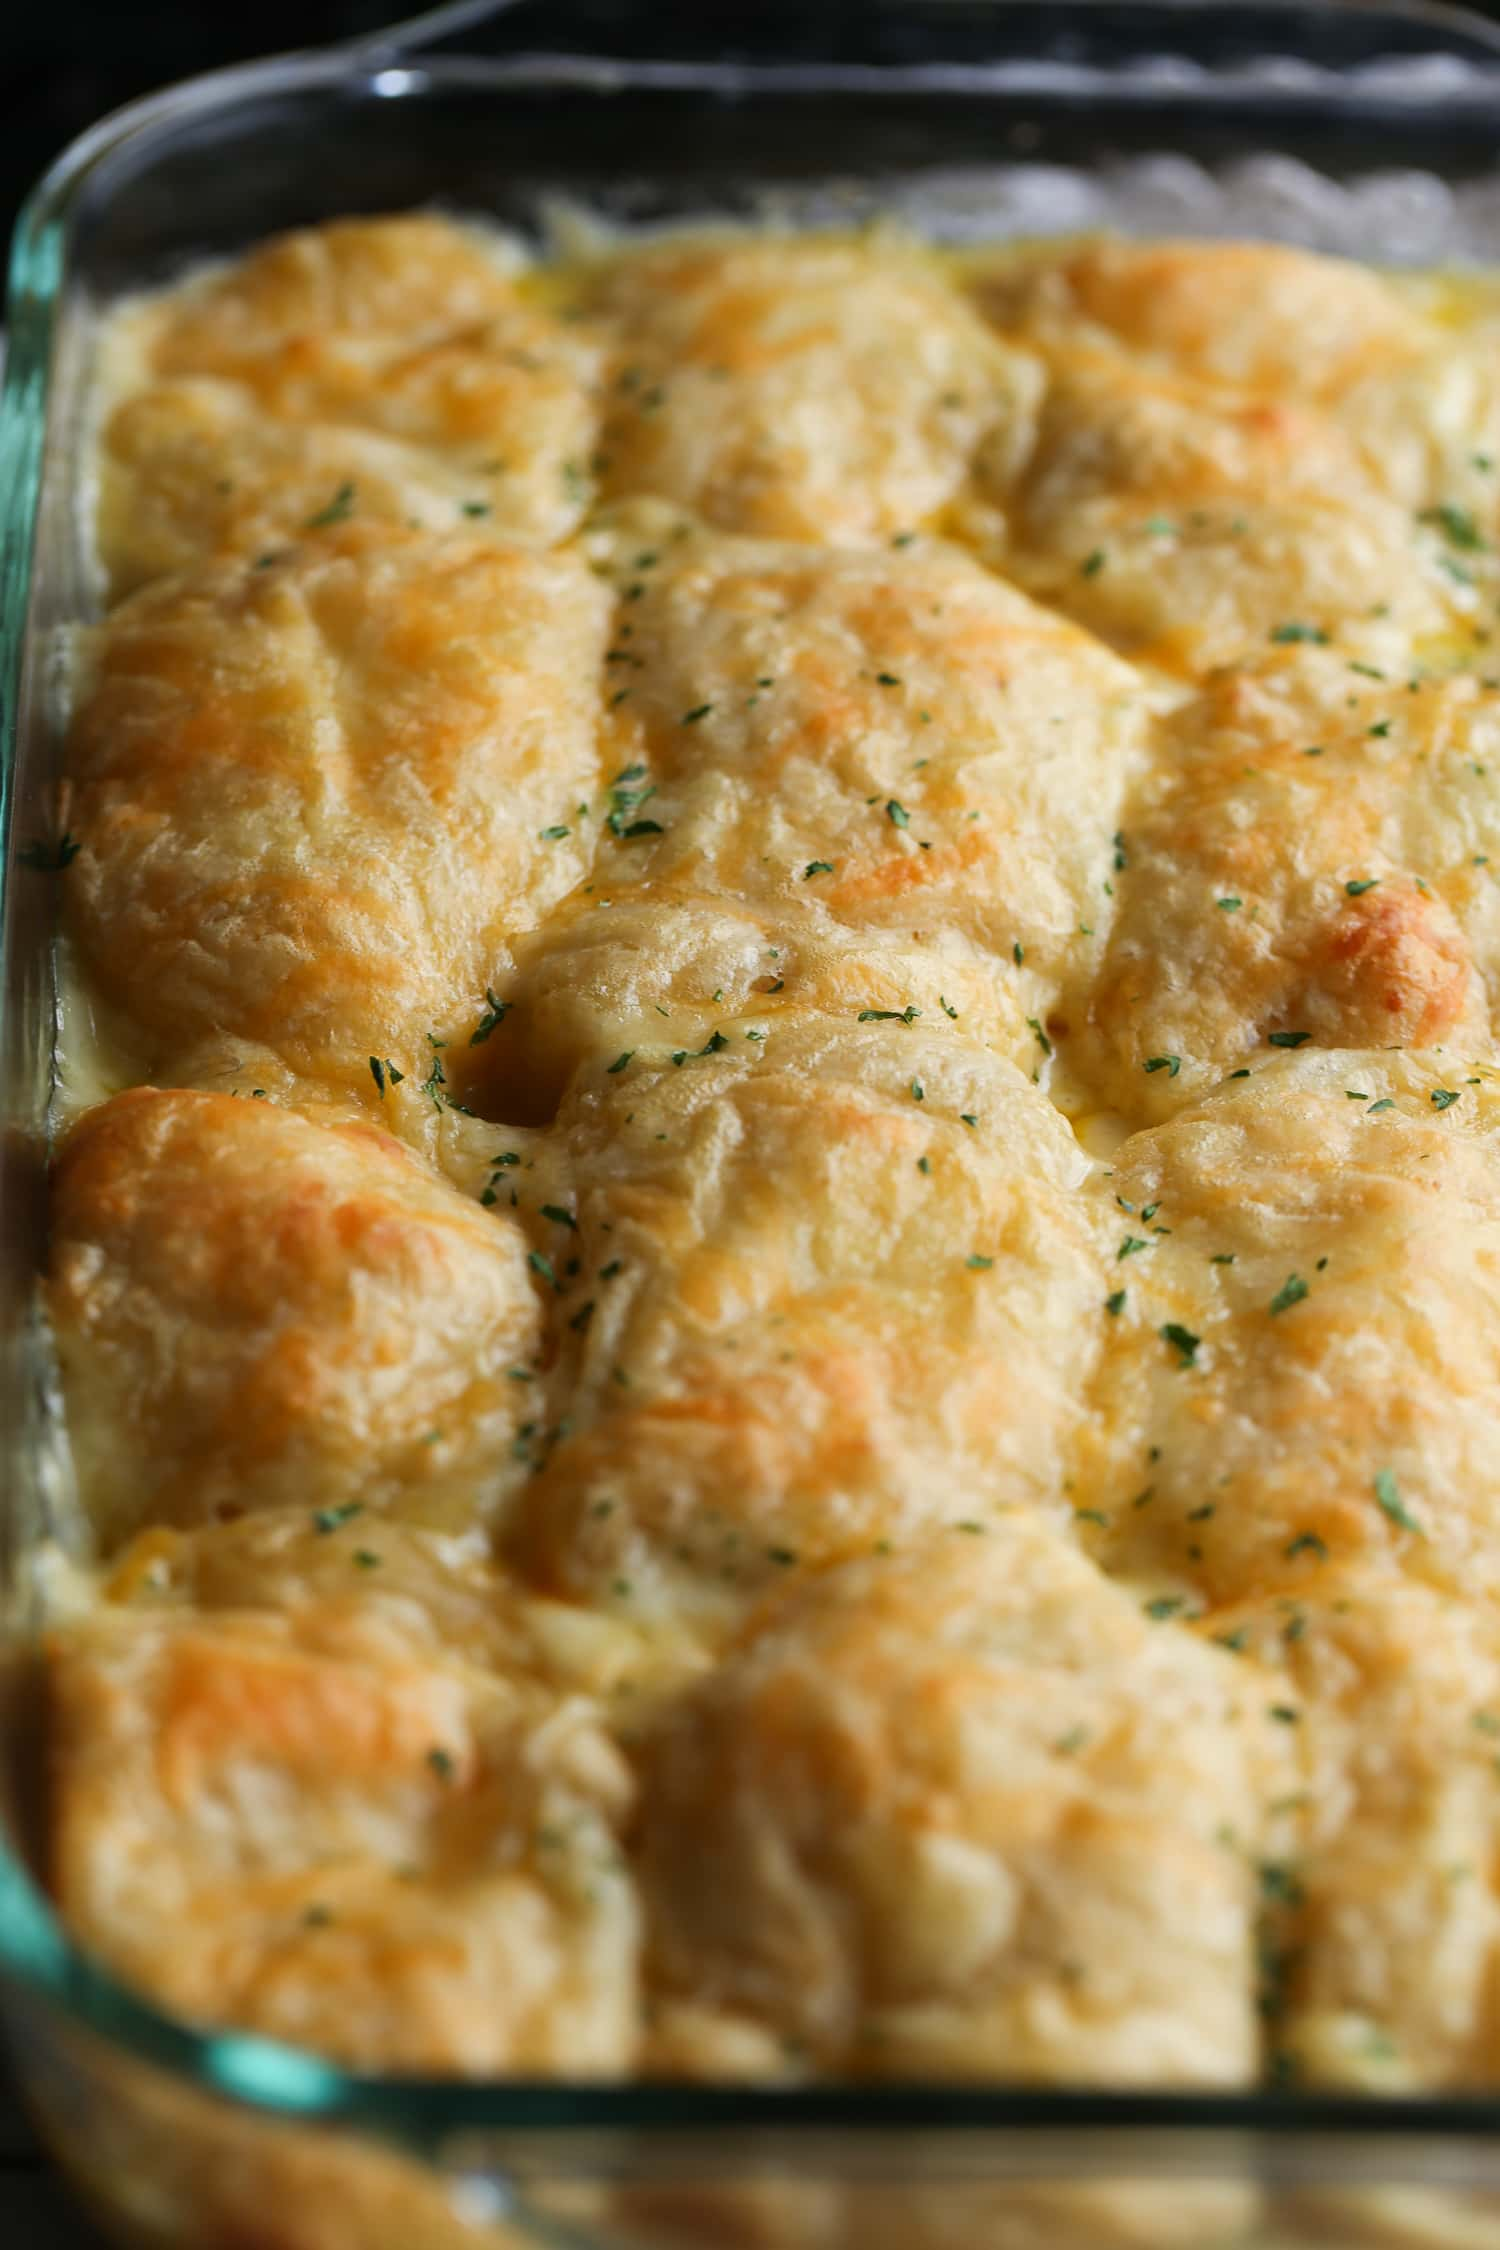 17. Cheesy Chicken Crescent Bake